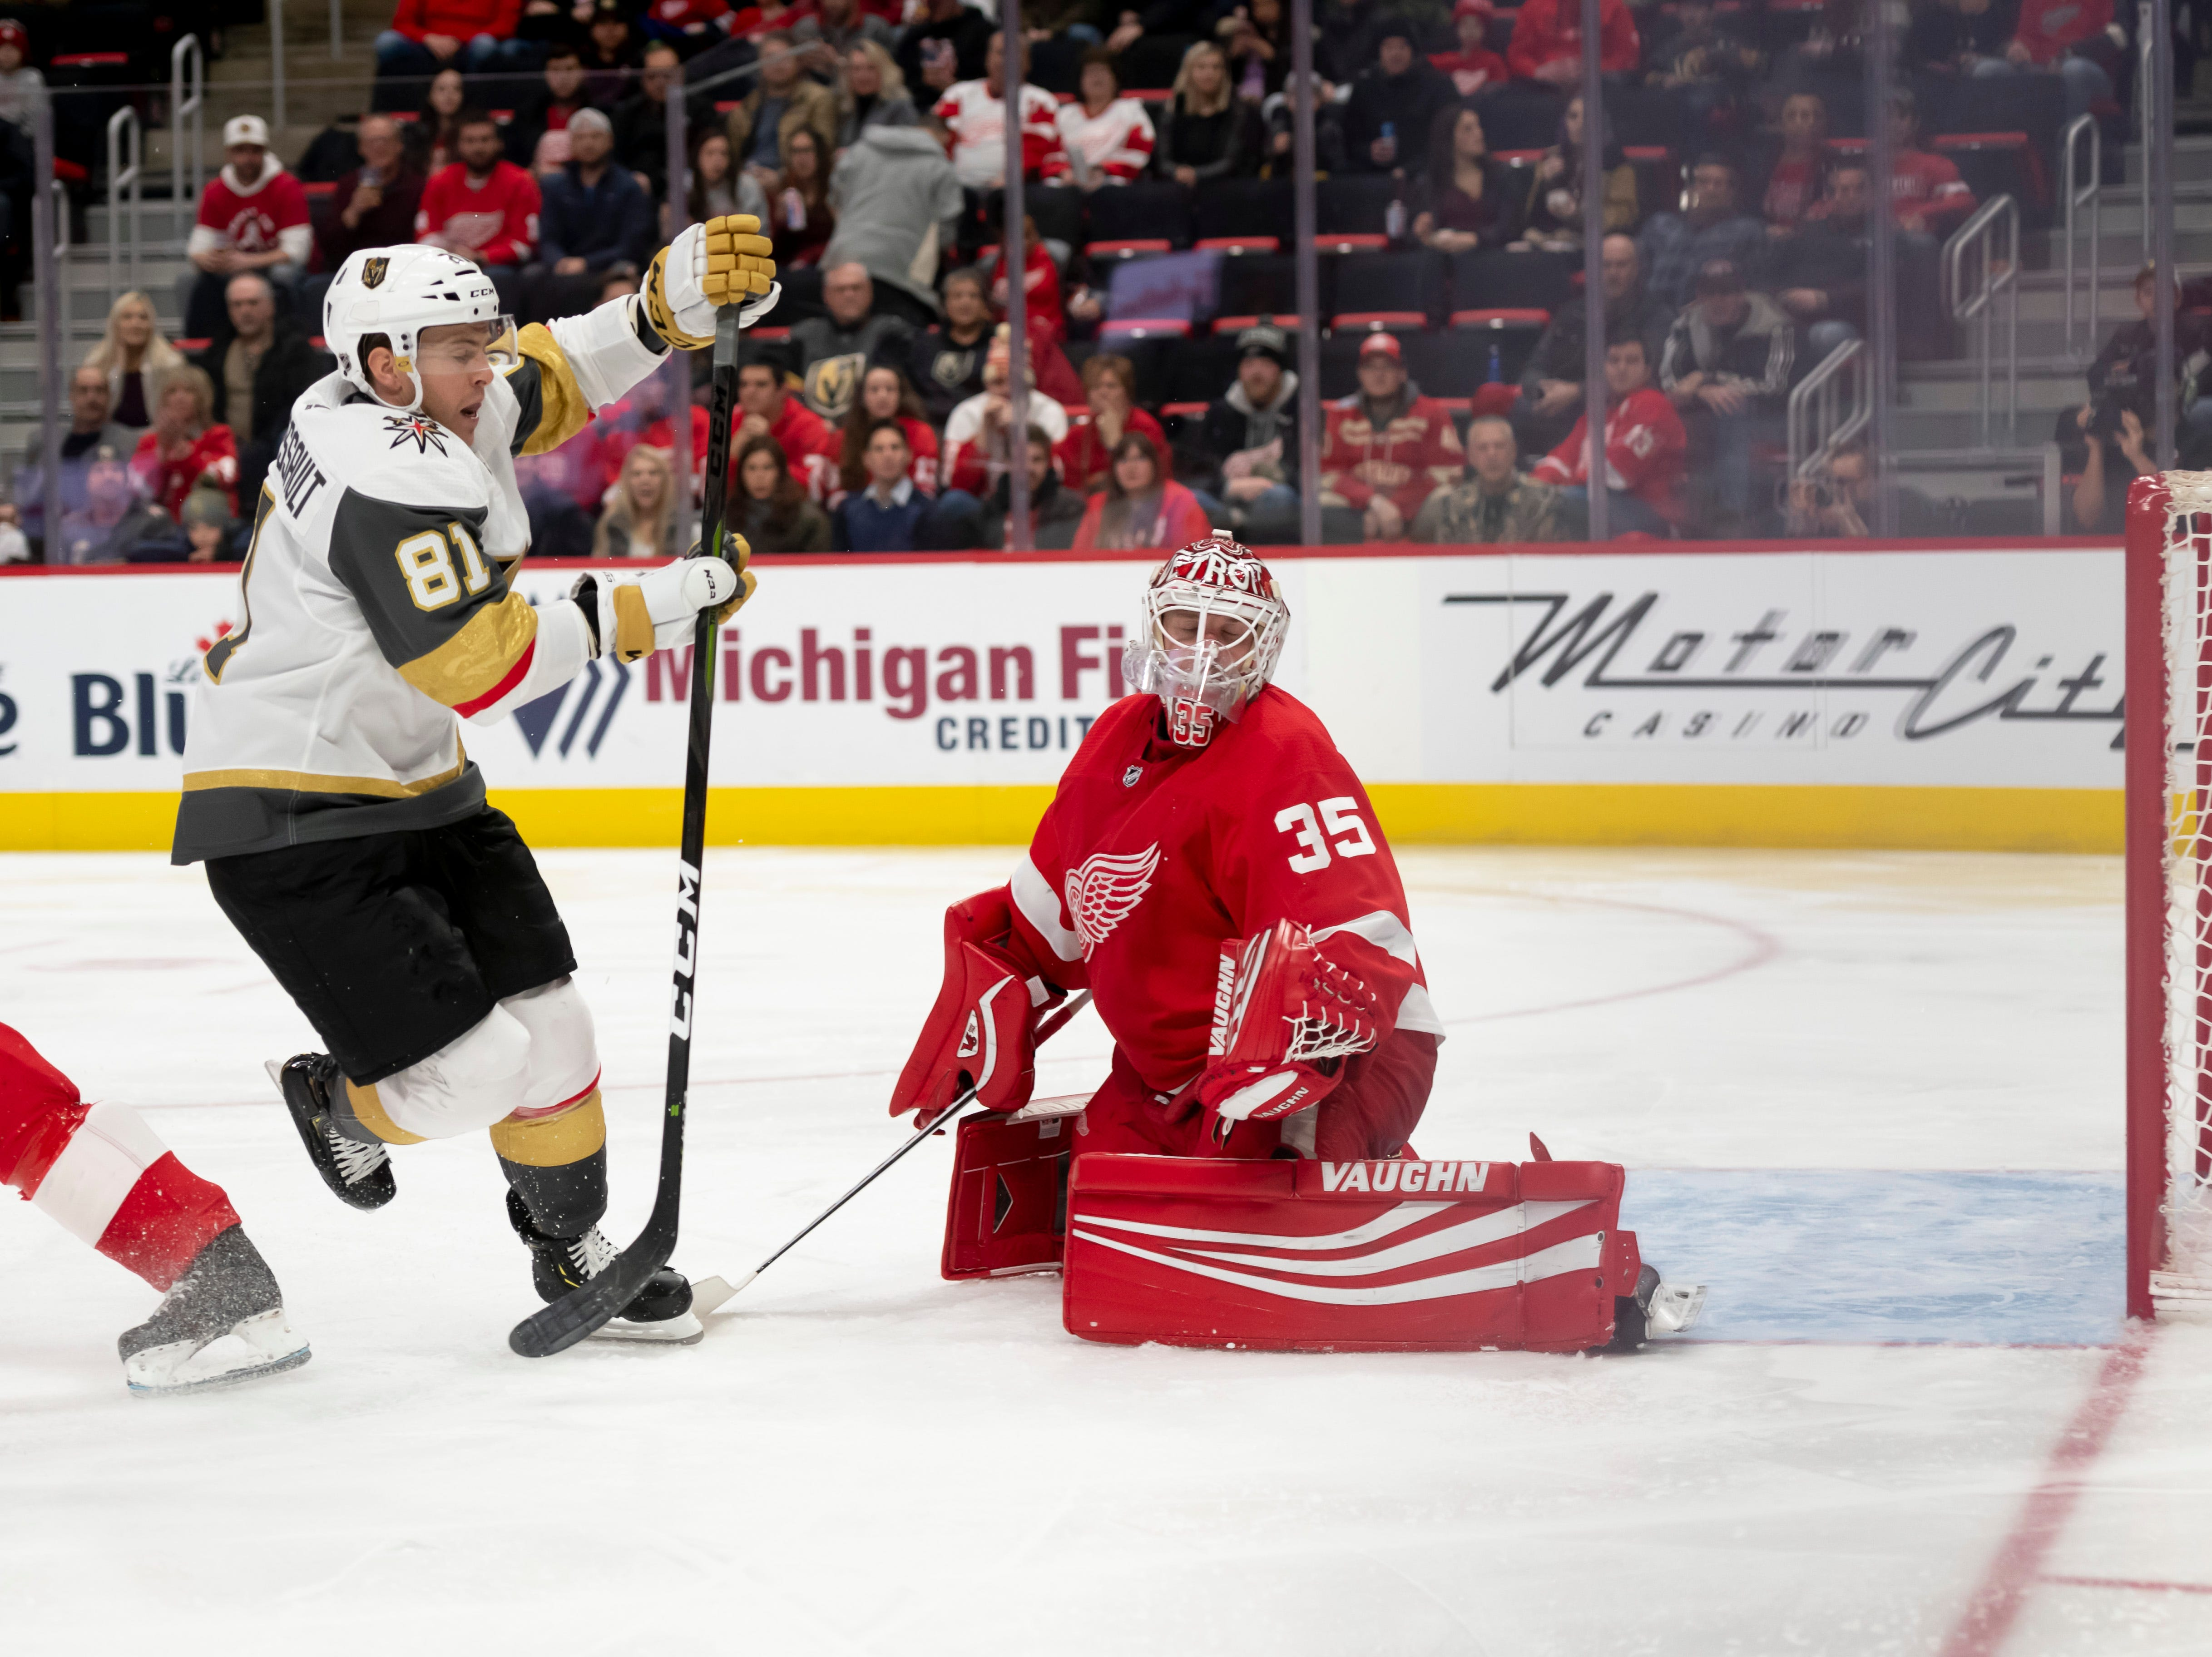 Vegas center Jonathan Marchessault sends the puck past Detroit goaltender Jimmy Howard for a goal in the second period.    Marchssault scored twice in the period.